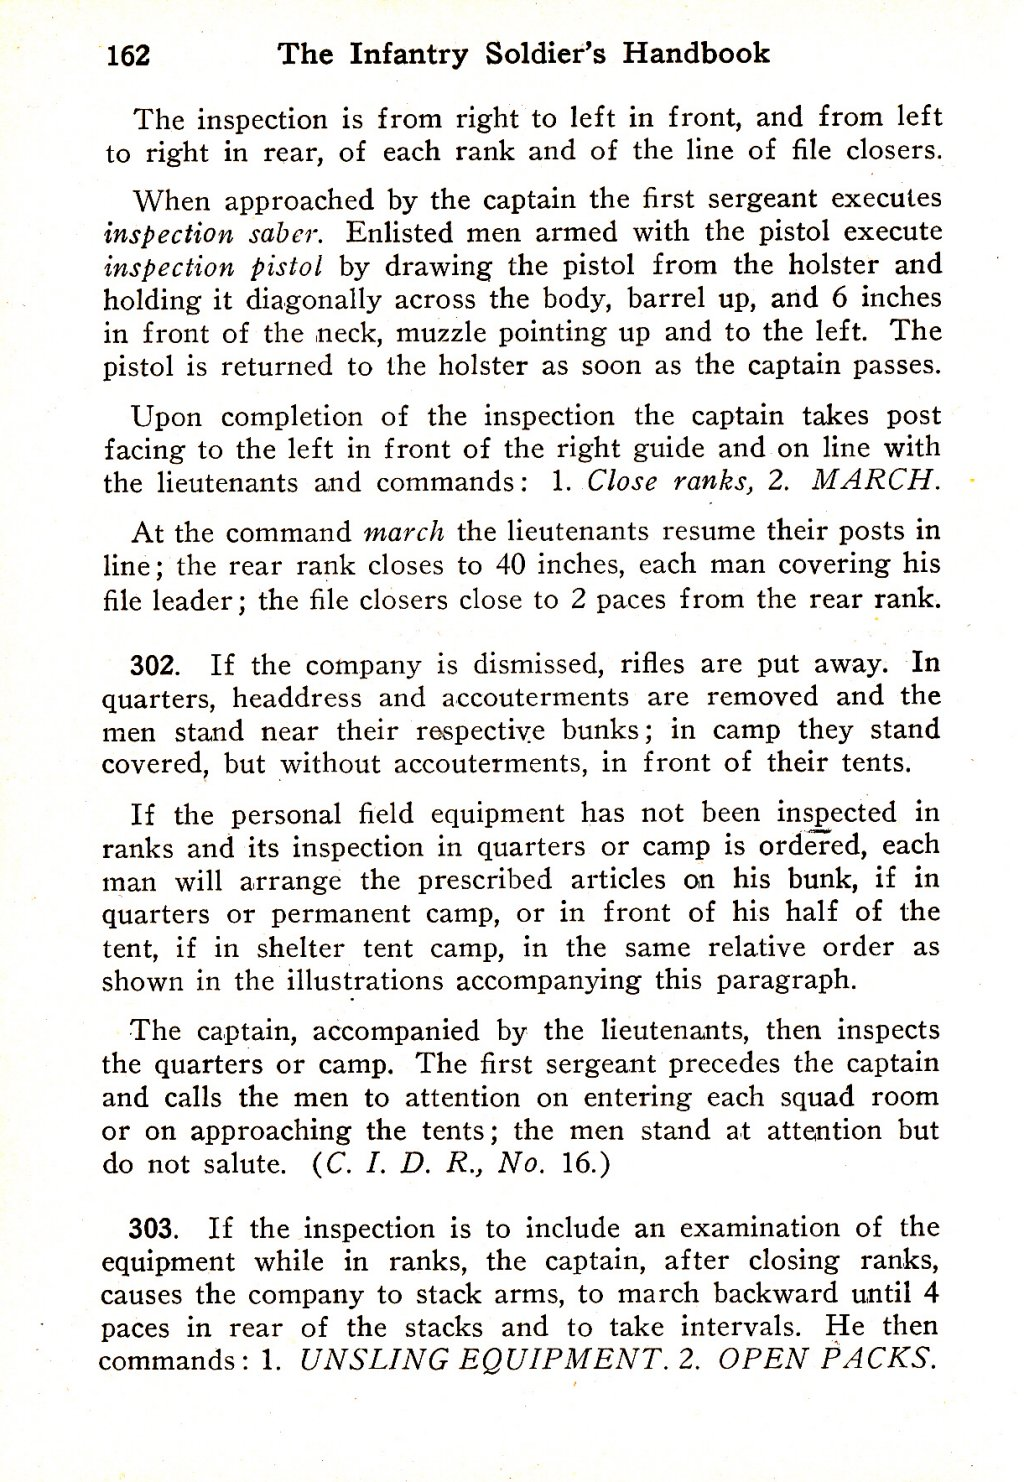 314th Infantry Regiment - Infantry Soldiers Handbook - Waldron - Page 162